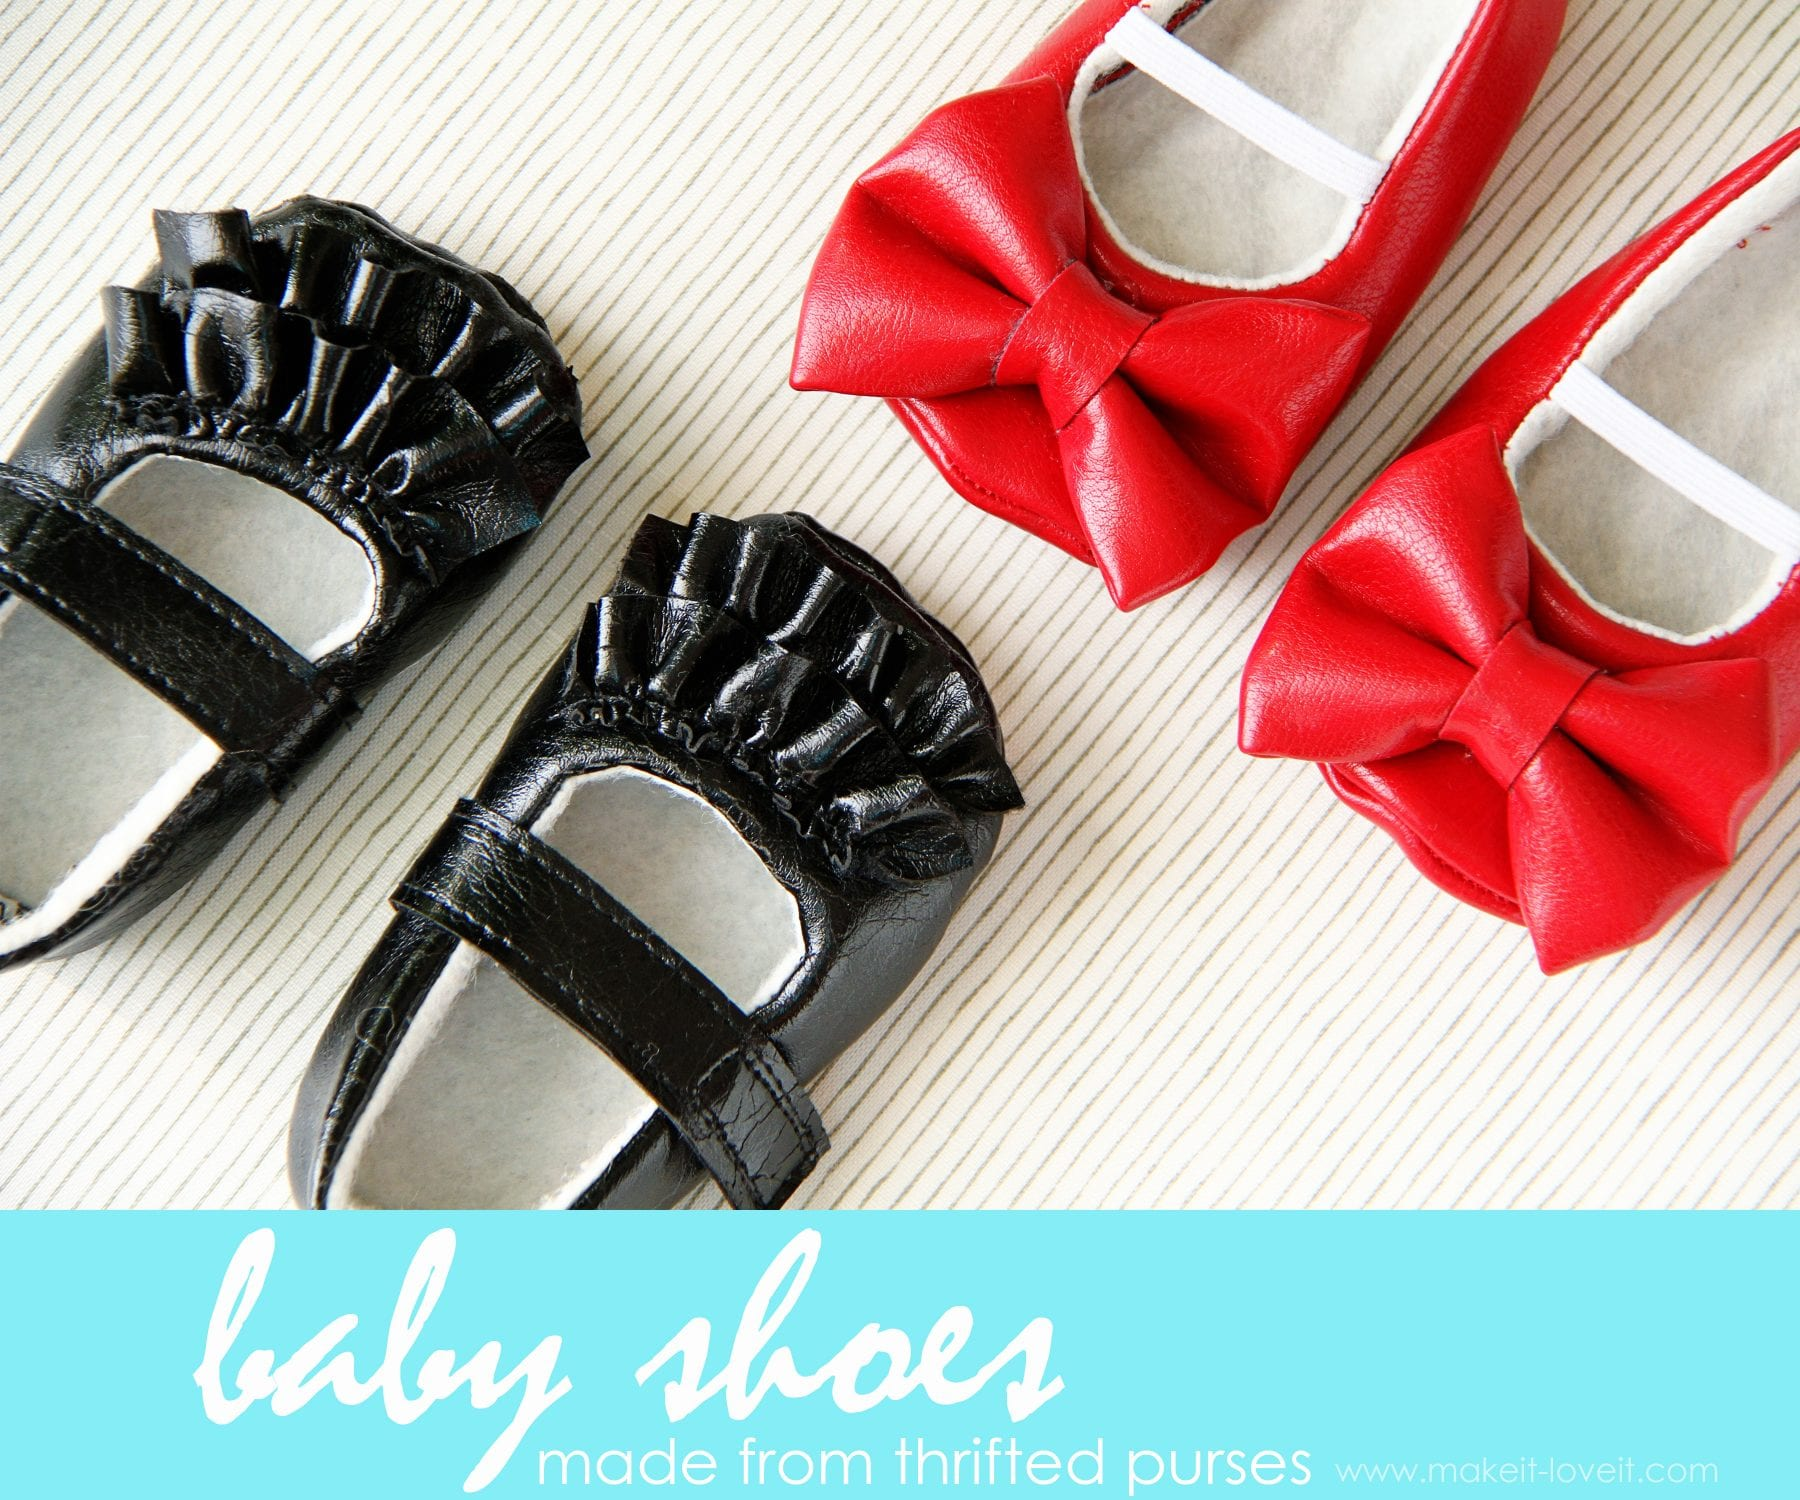 how to make chicken feet shoe covers